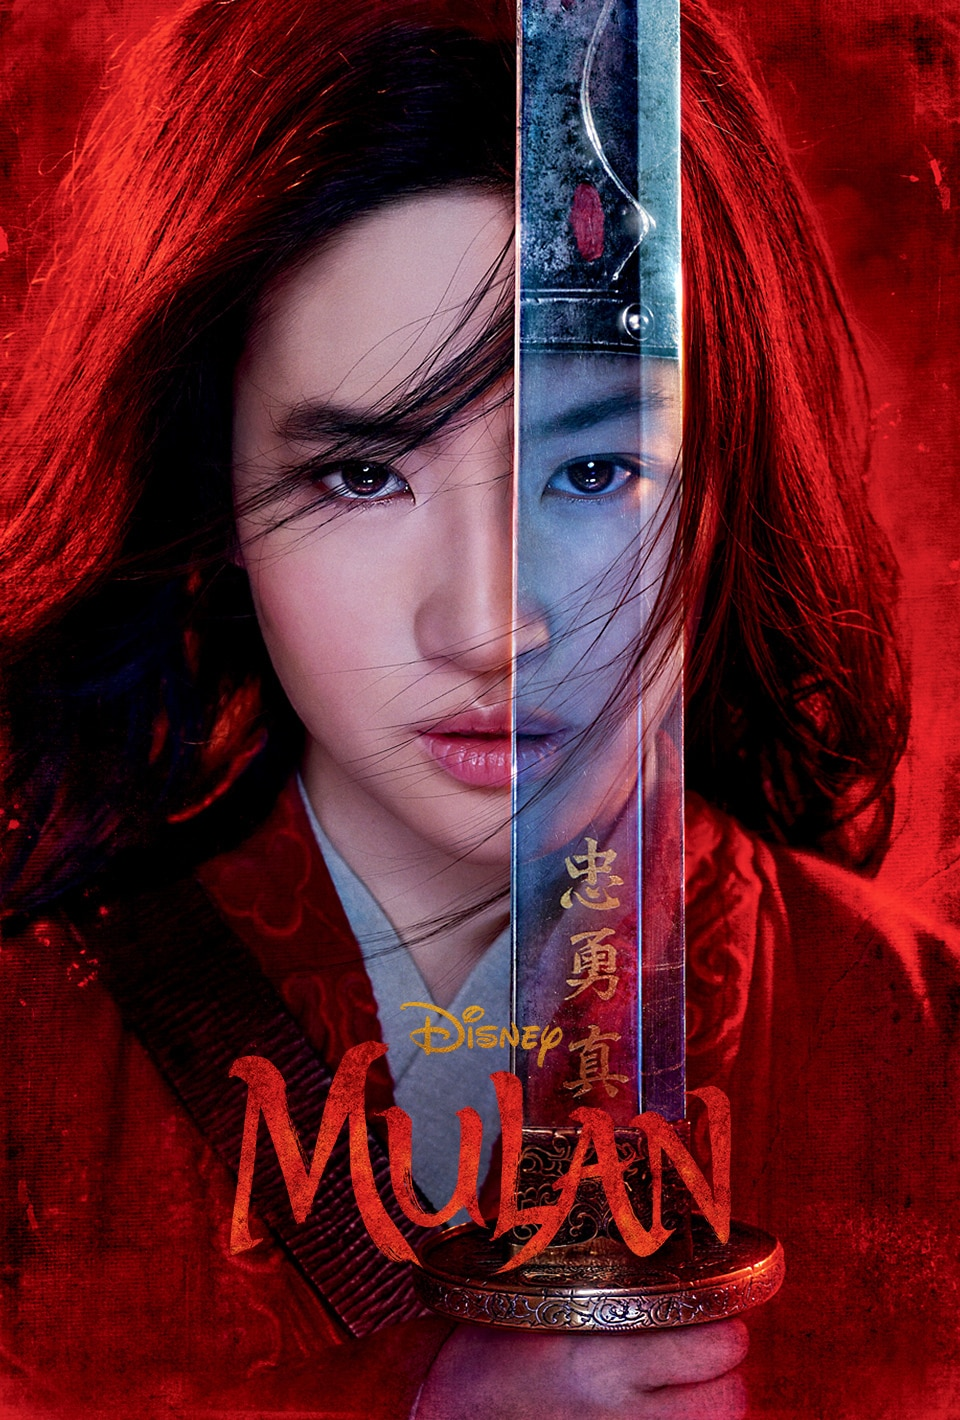 Mulan | Disney Movies Australia & New Zealand